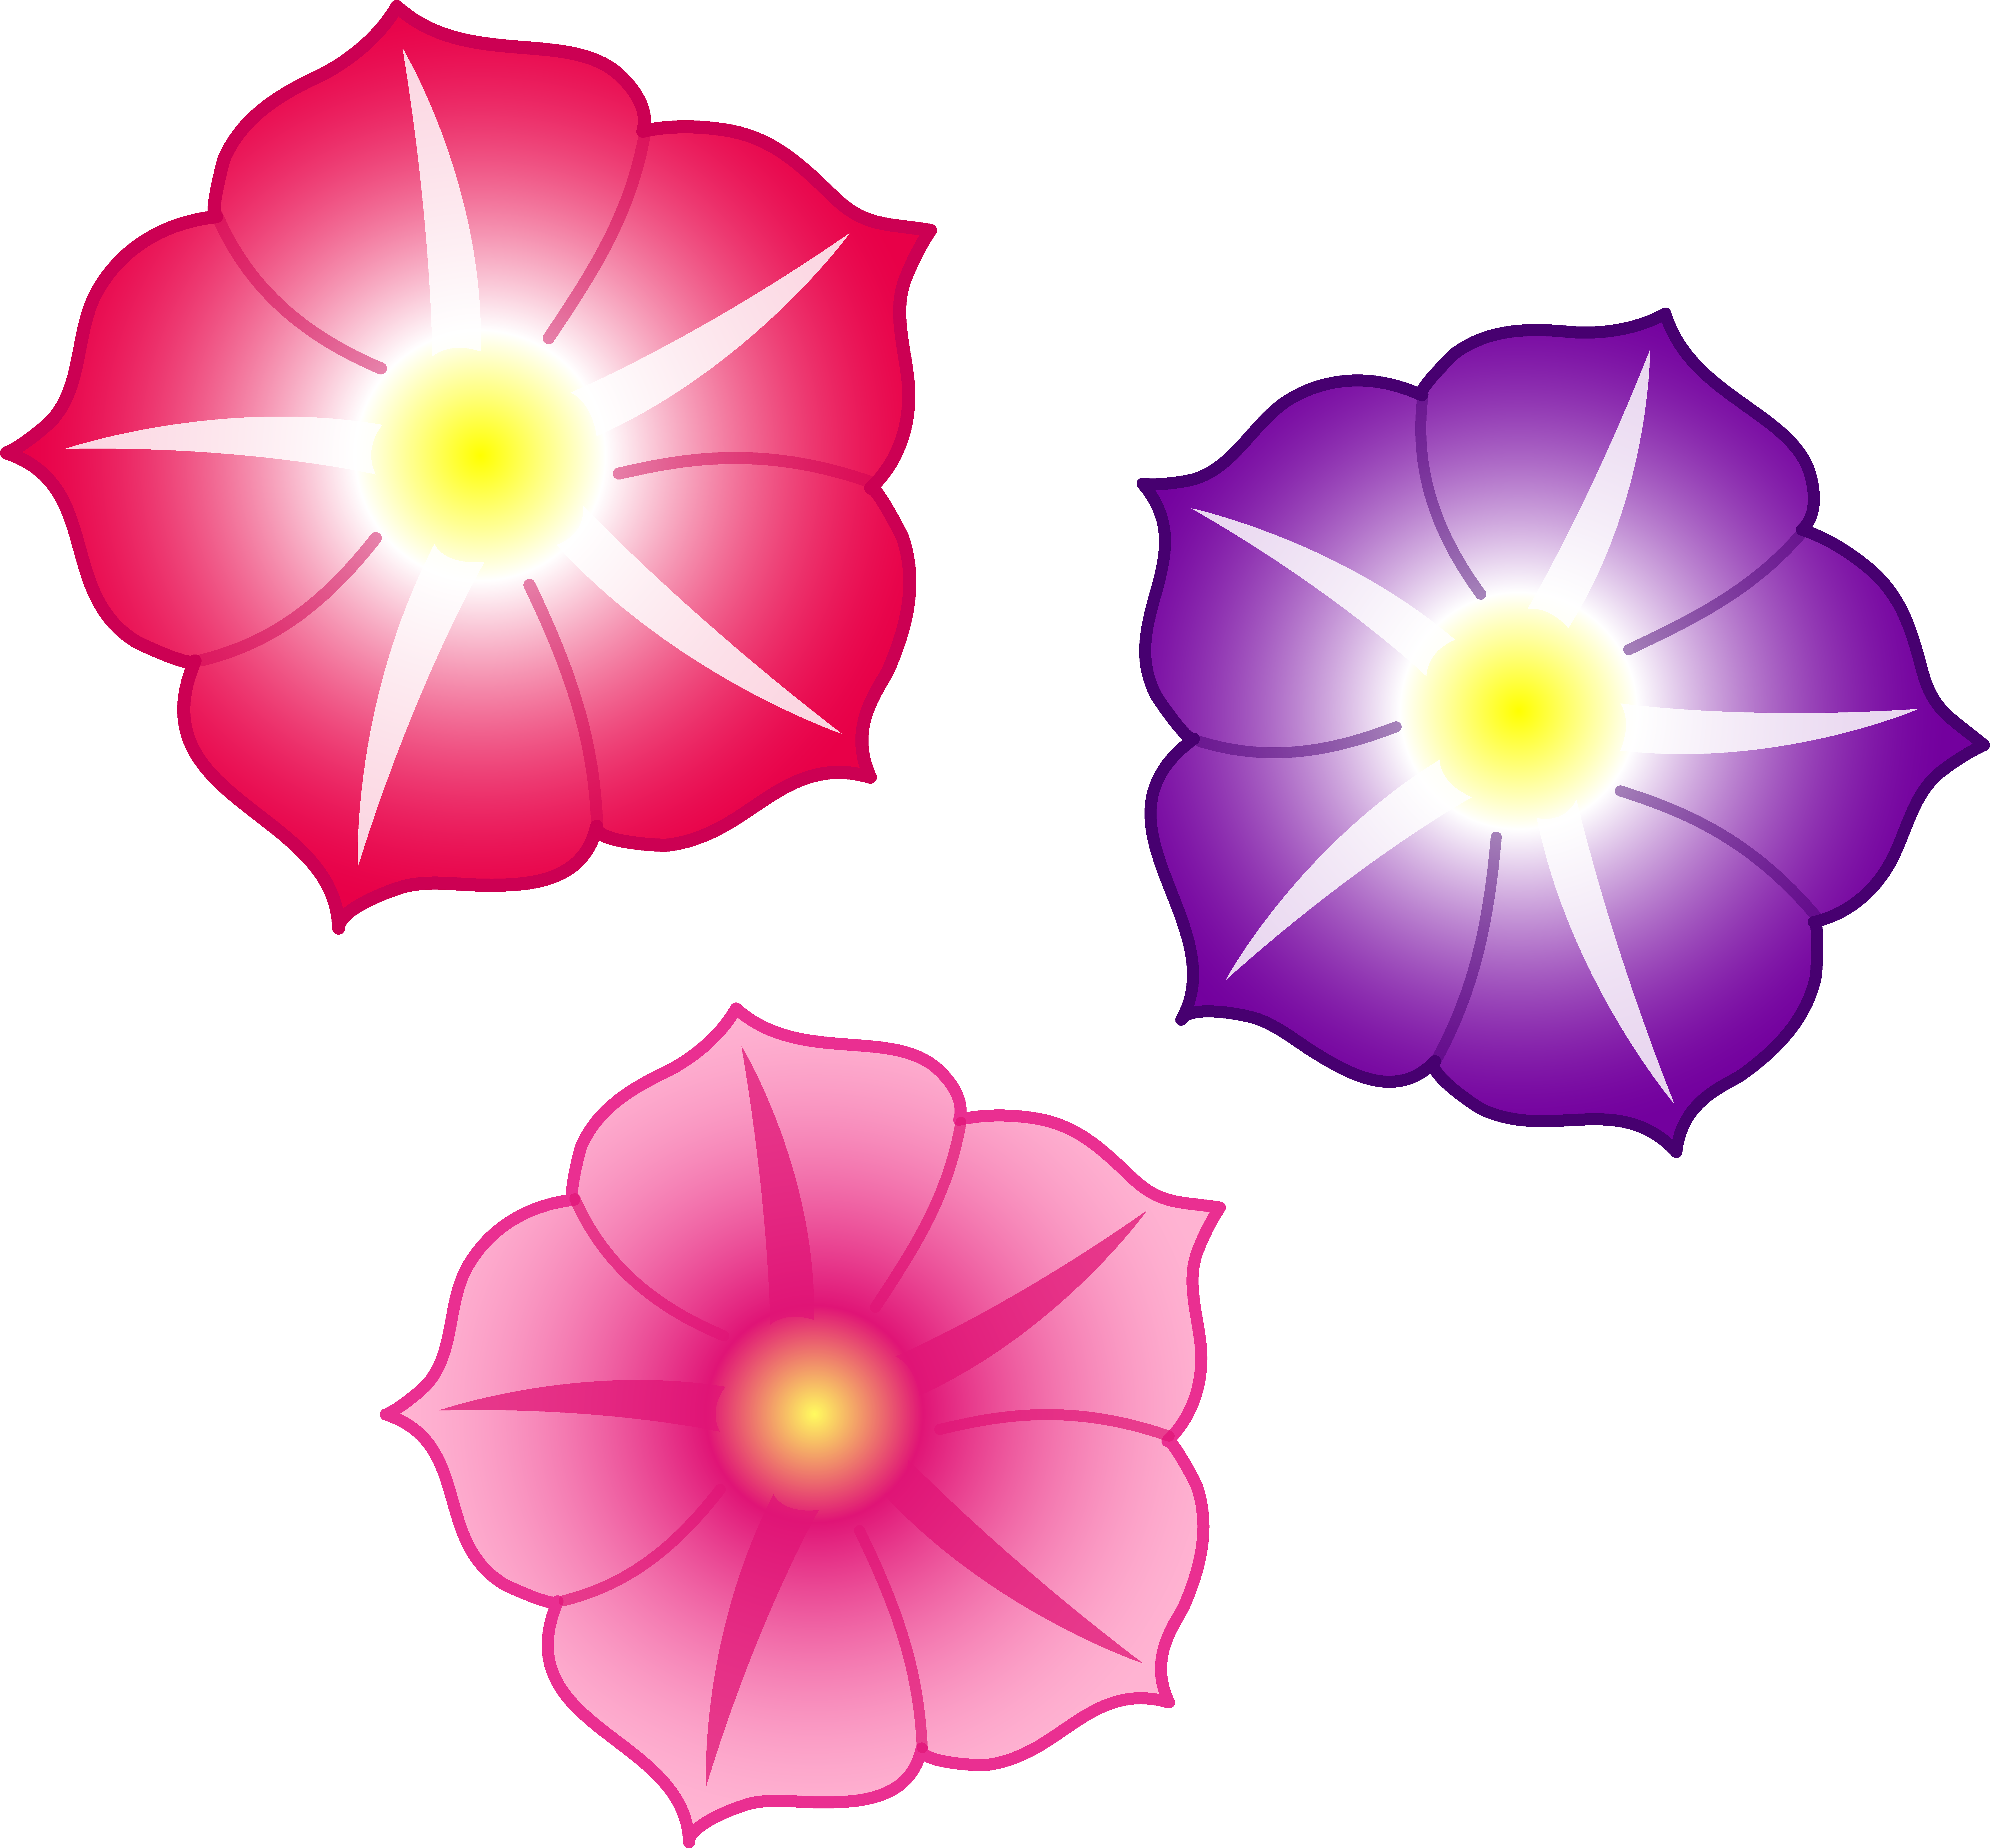 Colorful flower png. Flowers file mart